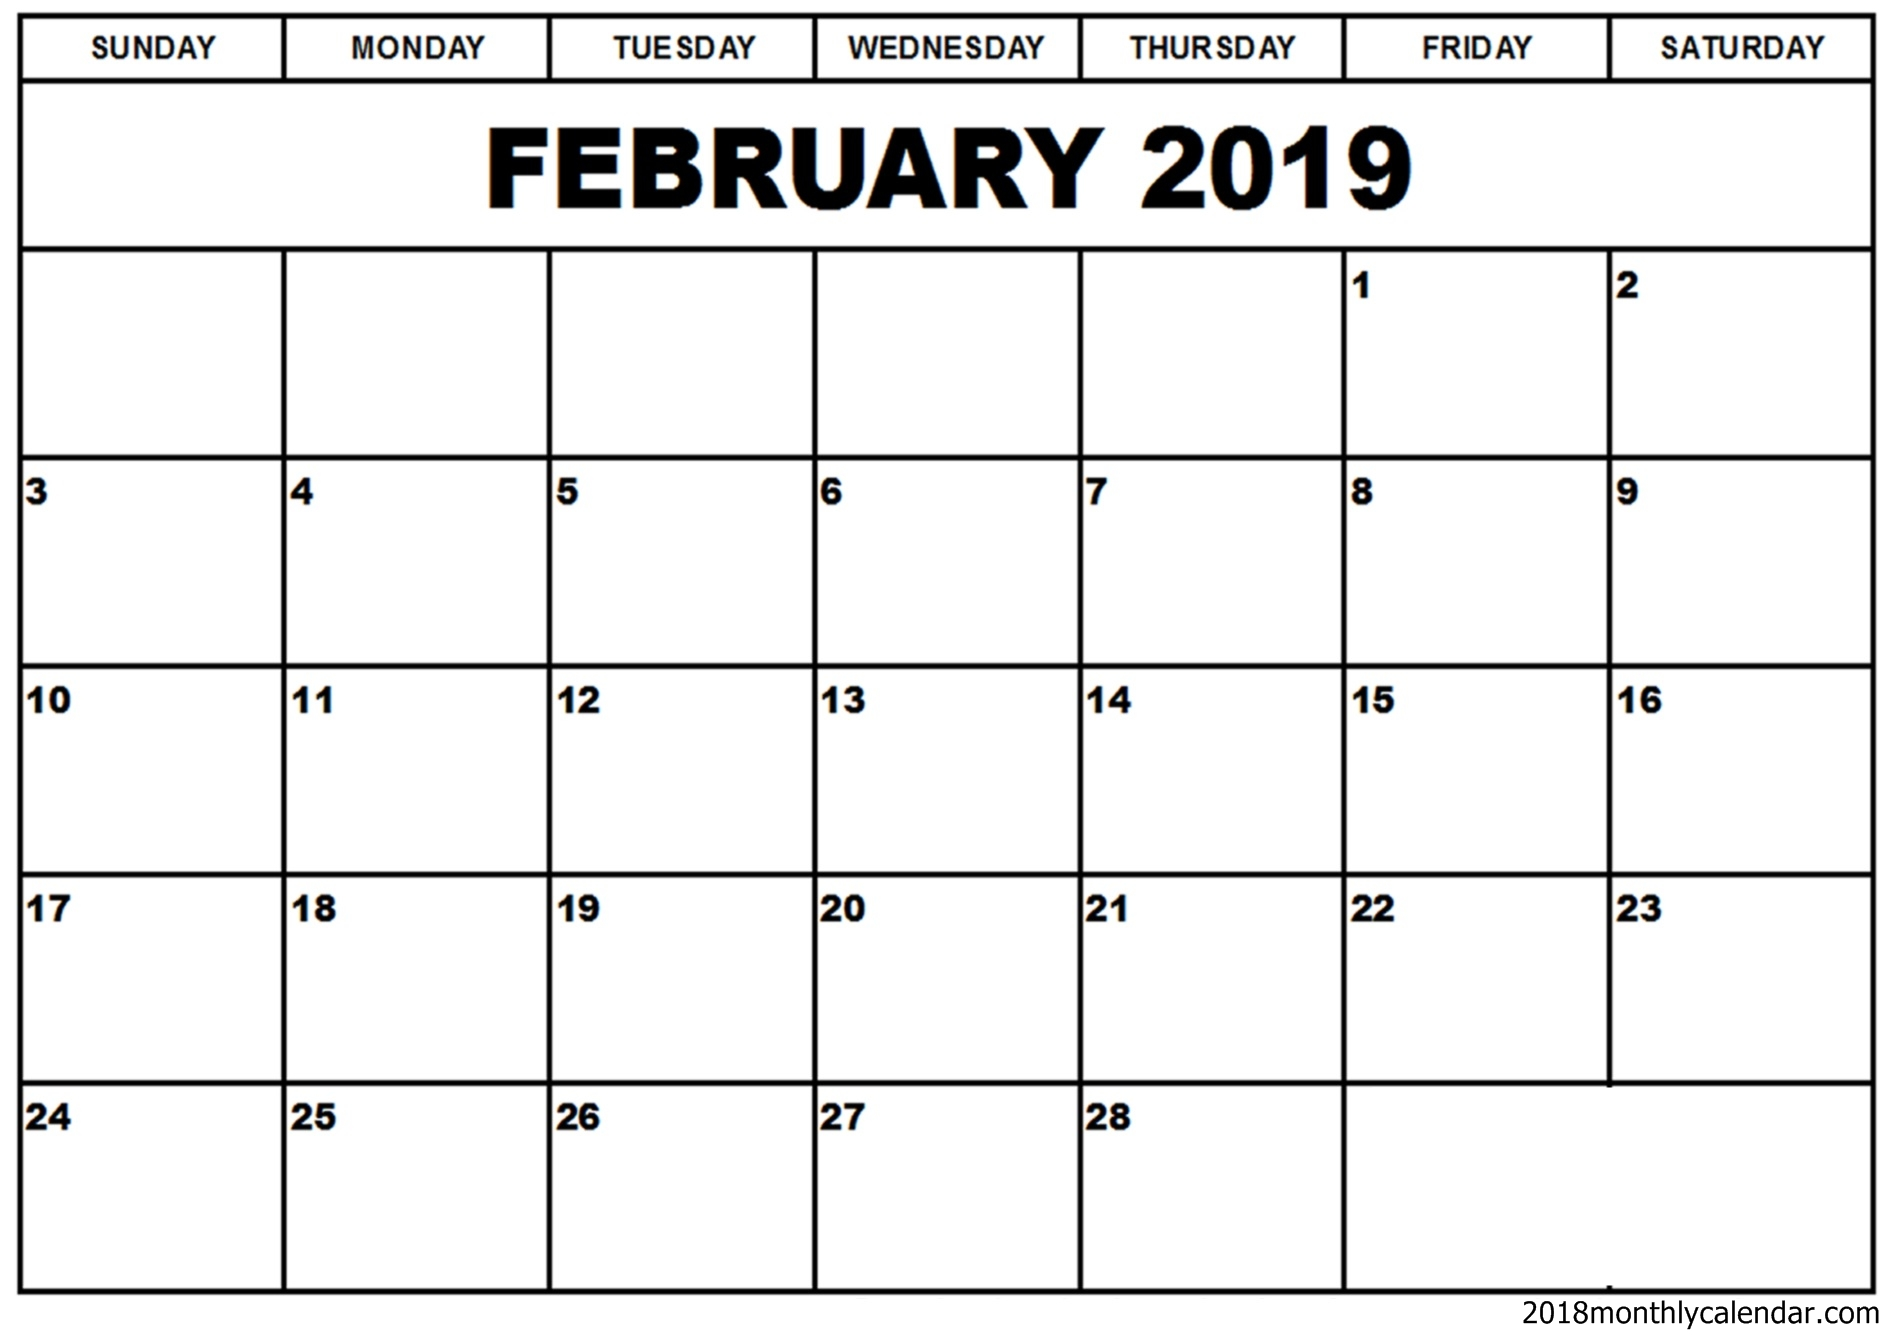 Download February Calendar 2019 February 2019 Monthly Calendar   Download Free Printable Calendar